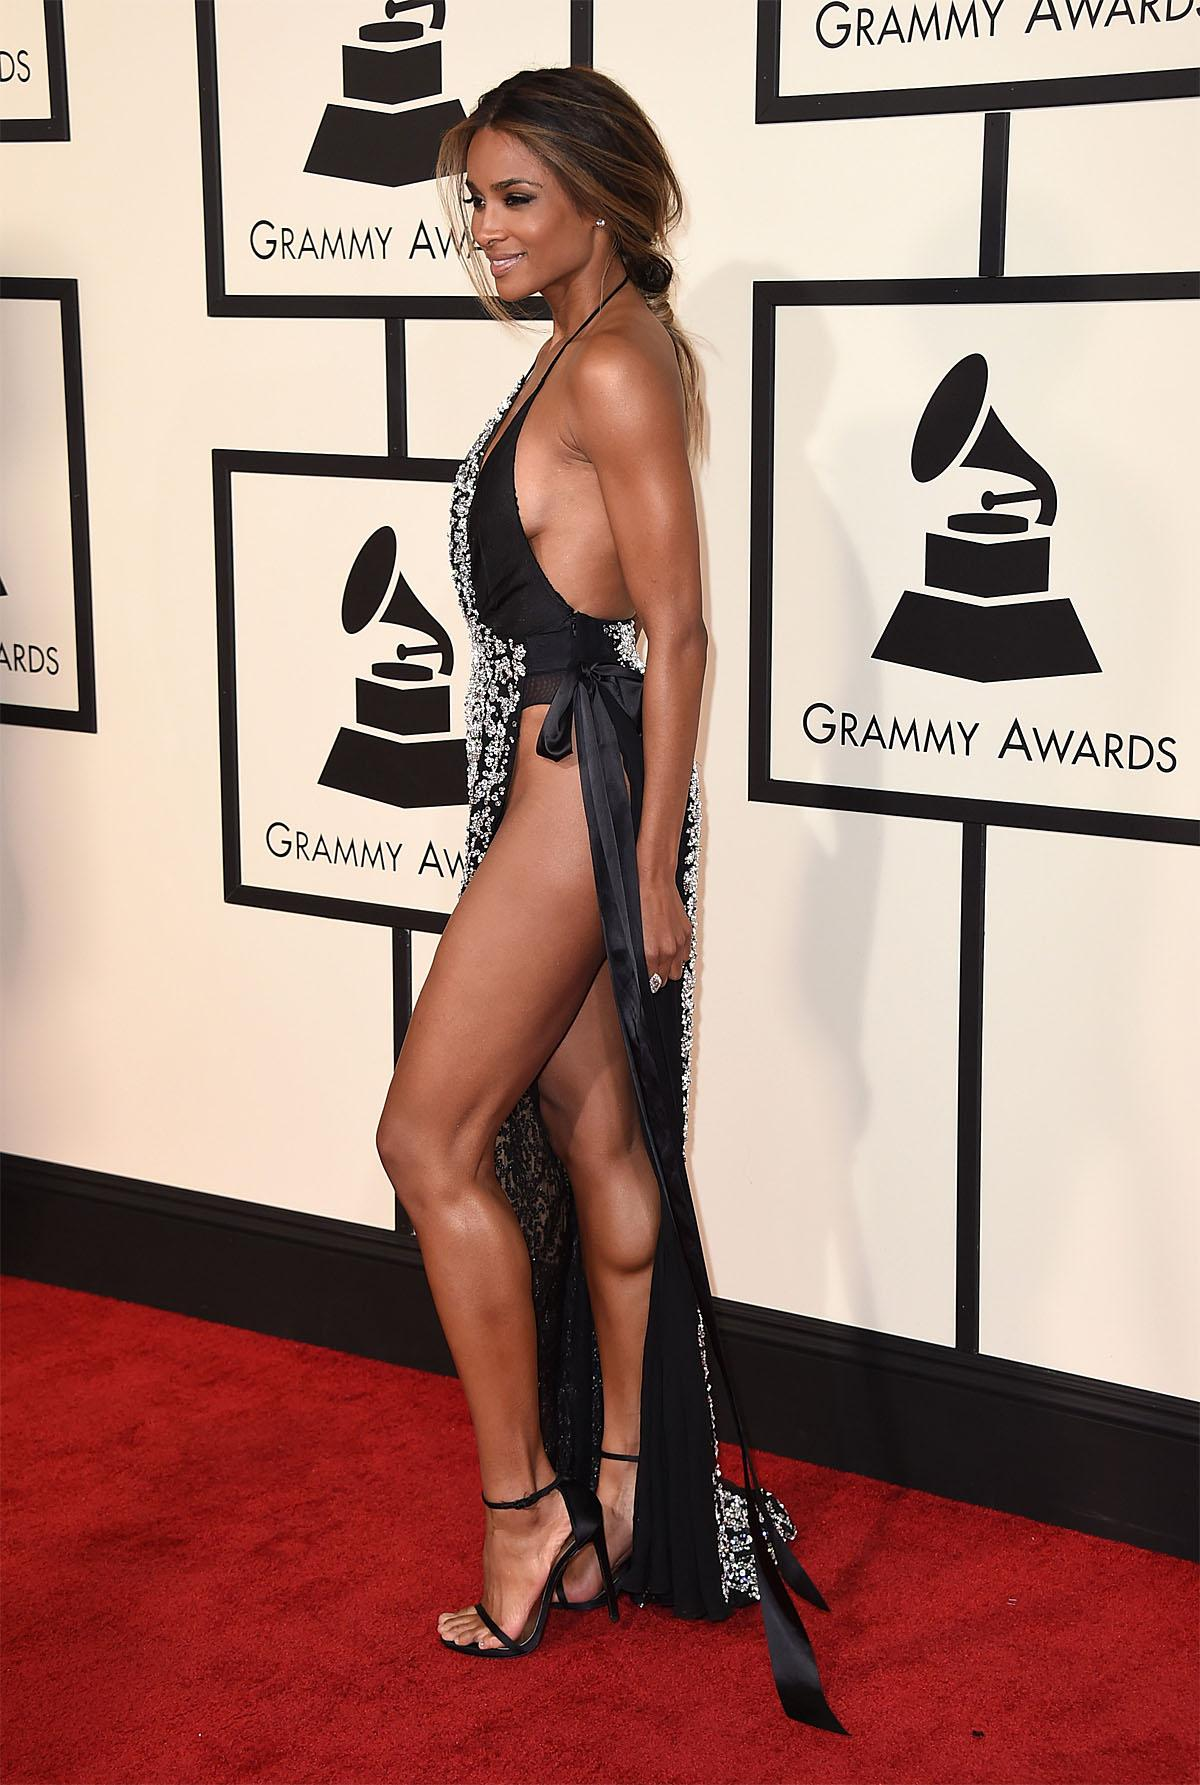 Ciara arrives at the 58th annual Grammy Awards at the Staples Center on Monday, Feb. 15, 2016, in Los Angeles. (Photo by Jordan Strauss/Invision/AP)